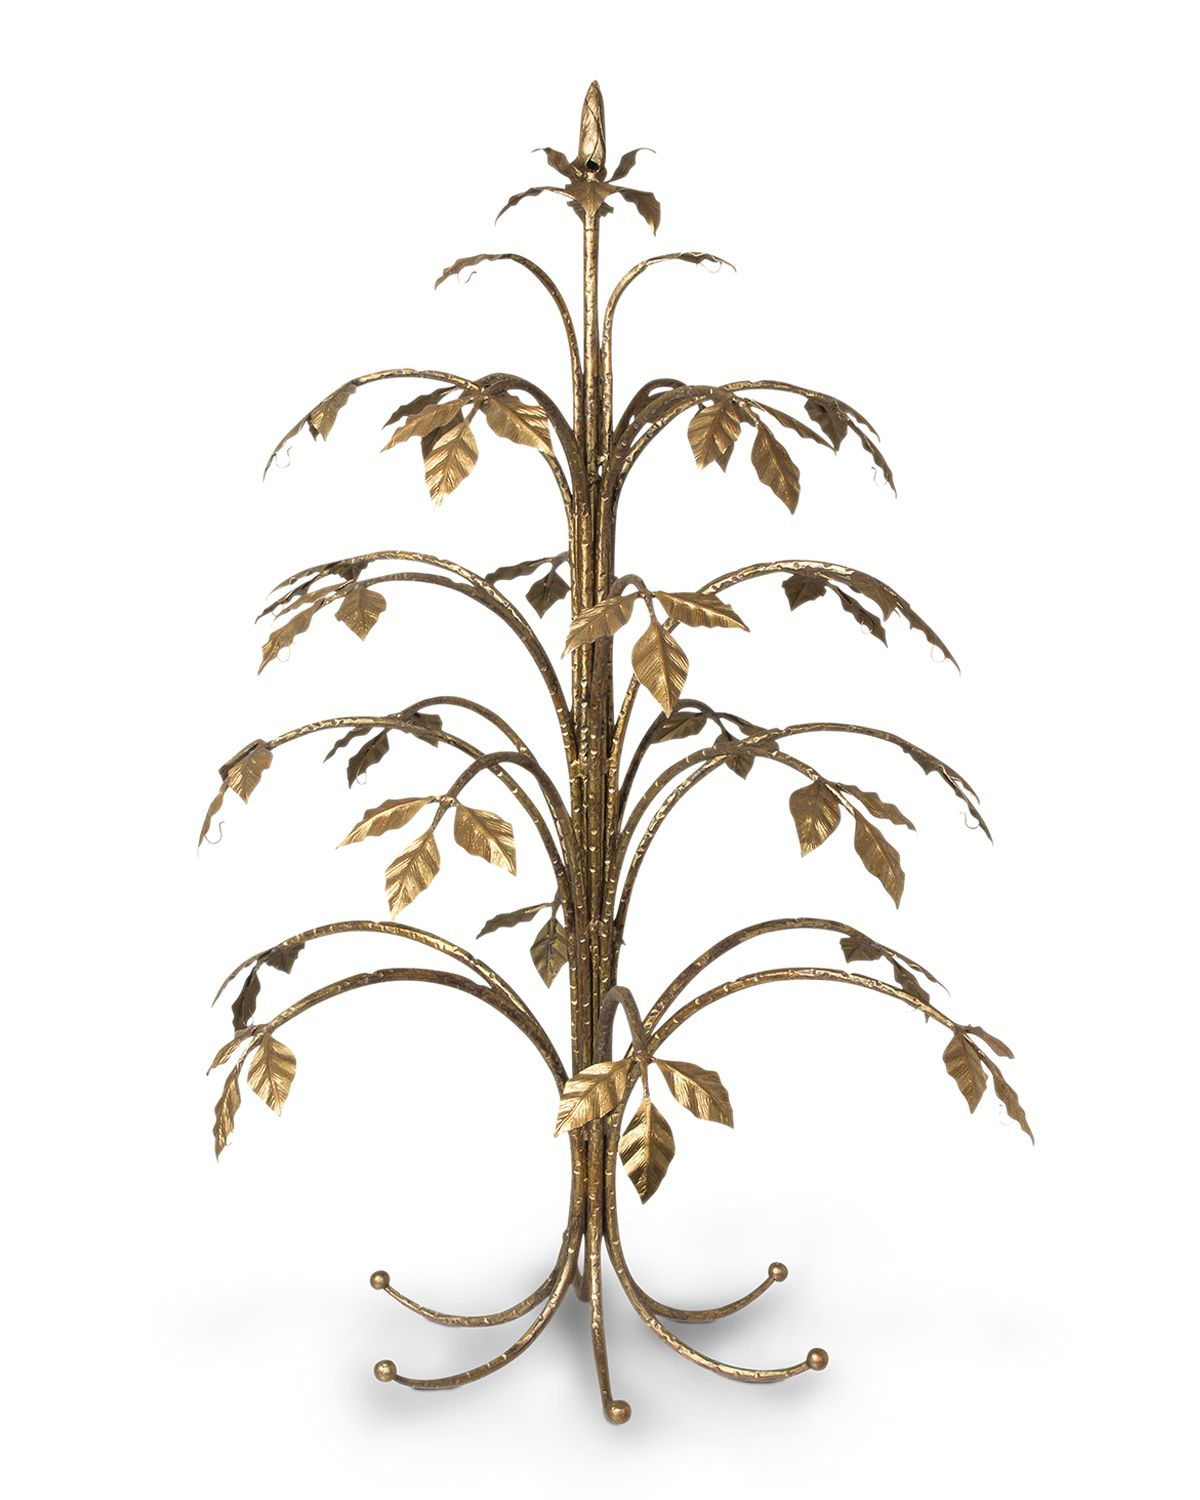 Modern metal christmas tree - 22 Modern Christmas Trees For Holiday Decorations Contemporary Holiday Trees